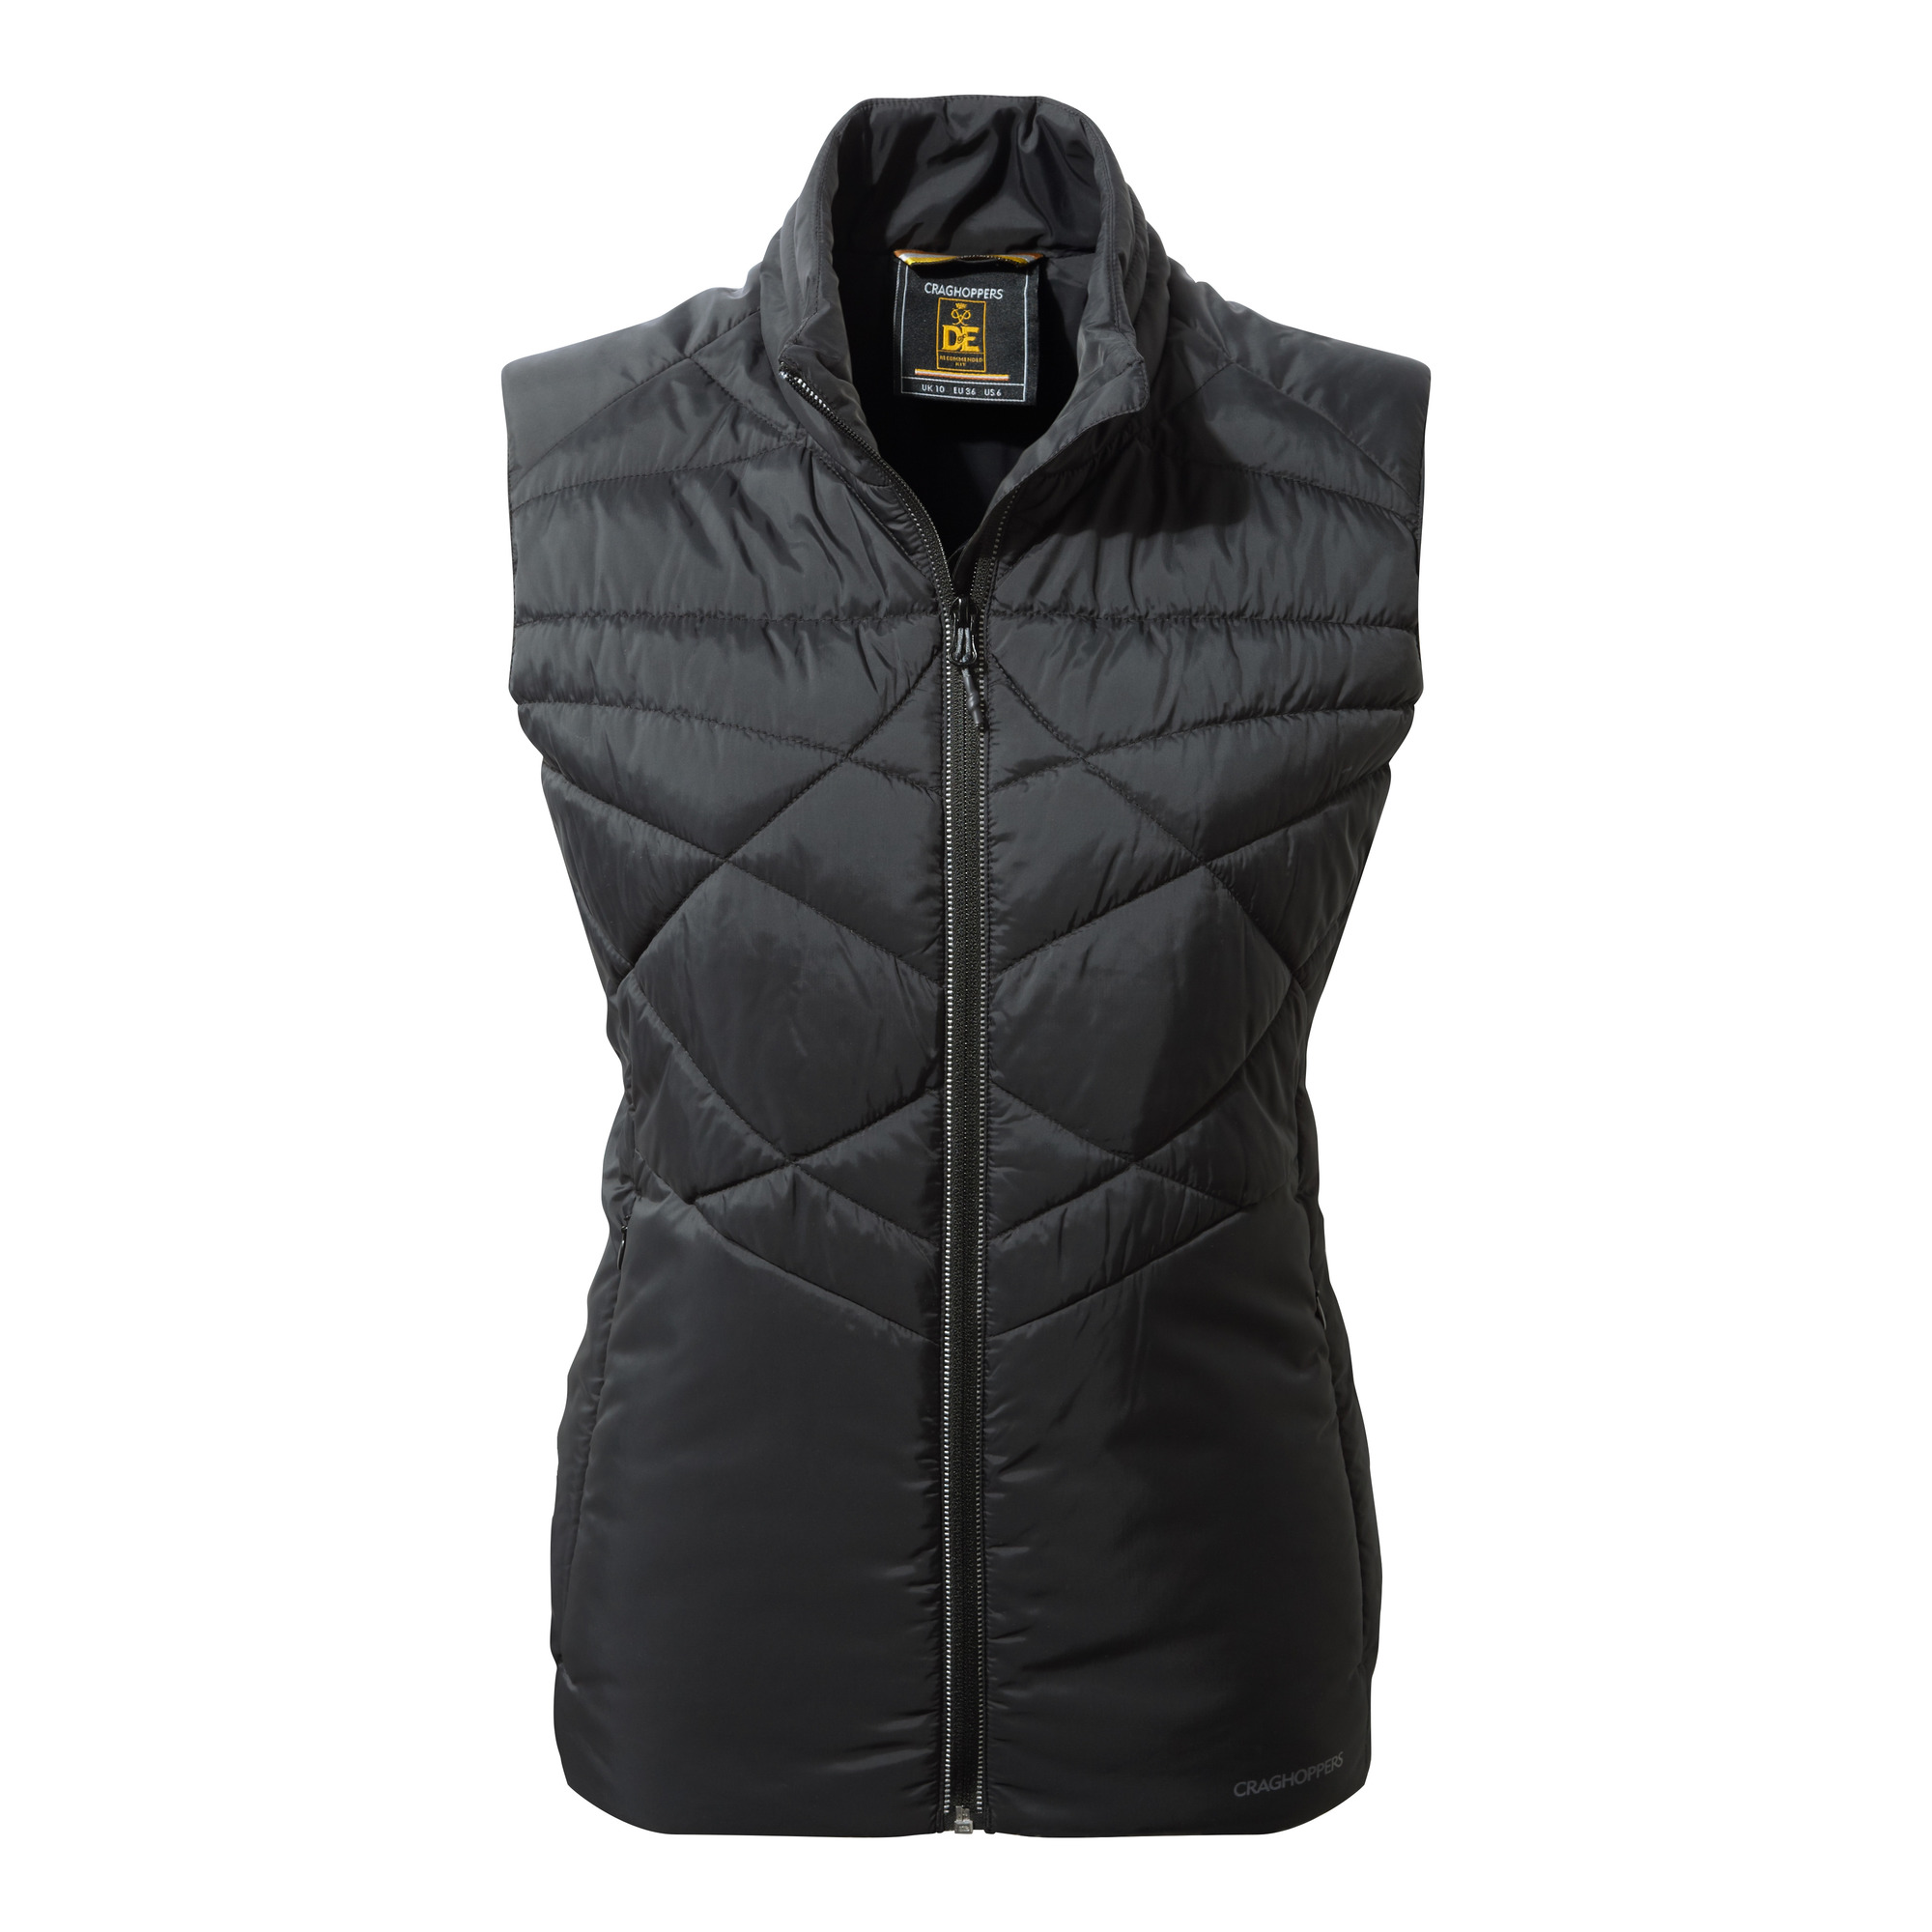 Craghoppers-Womens-Ladies-Midas-Lightweight-Insulated-Gilet-CG623